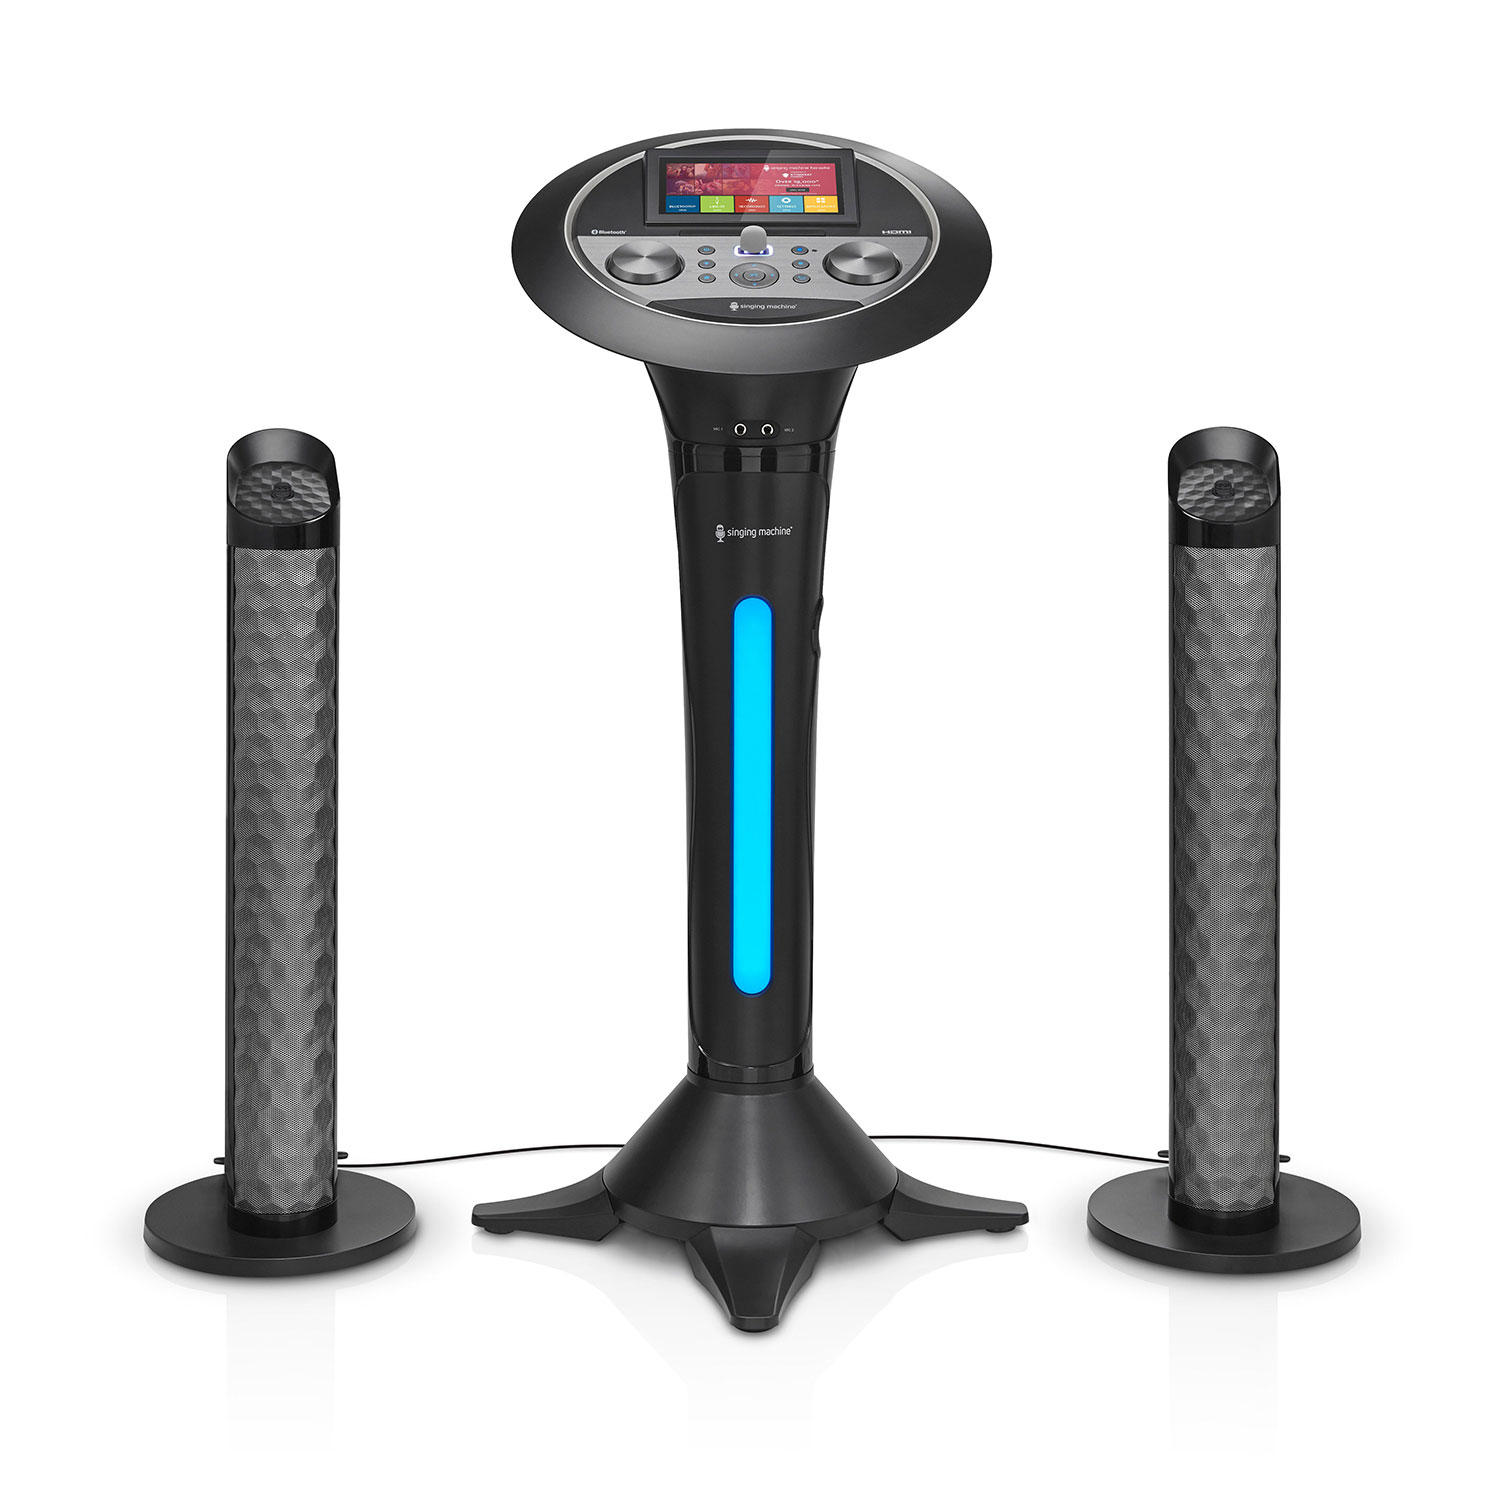 Singing Machine ISM1080 WiFi Pedestal Karaoke